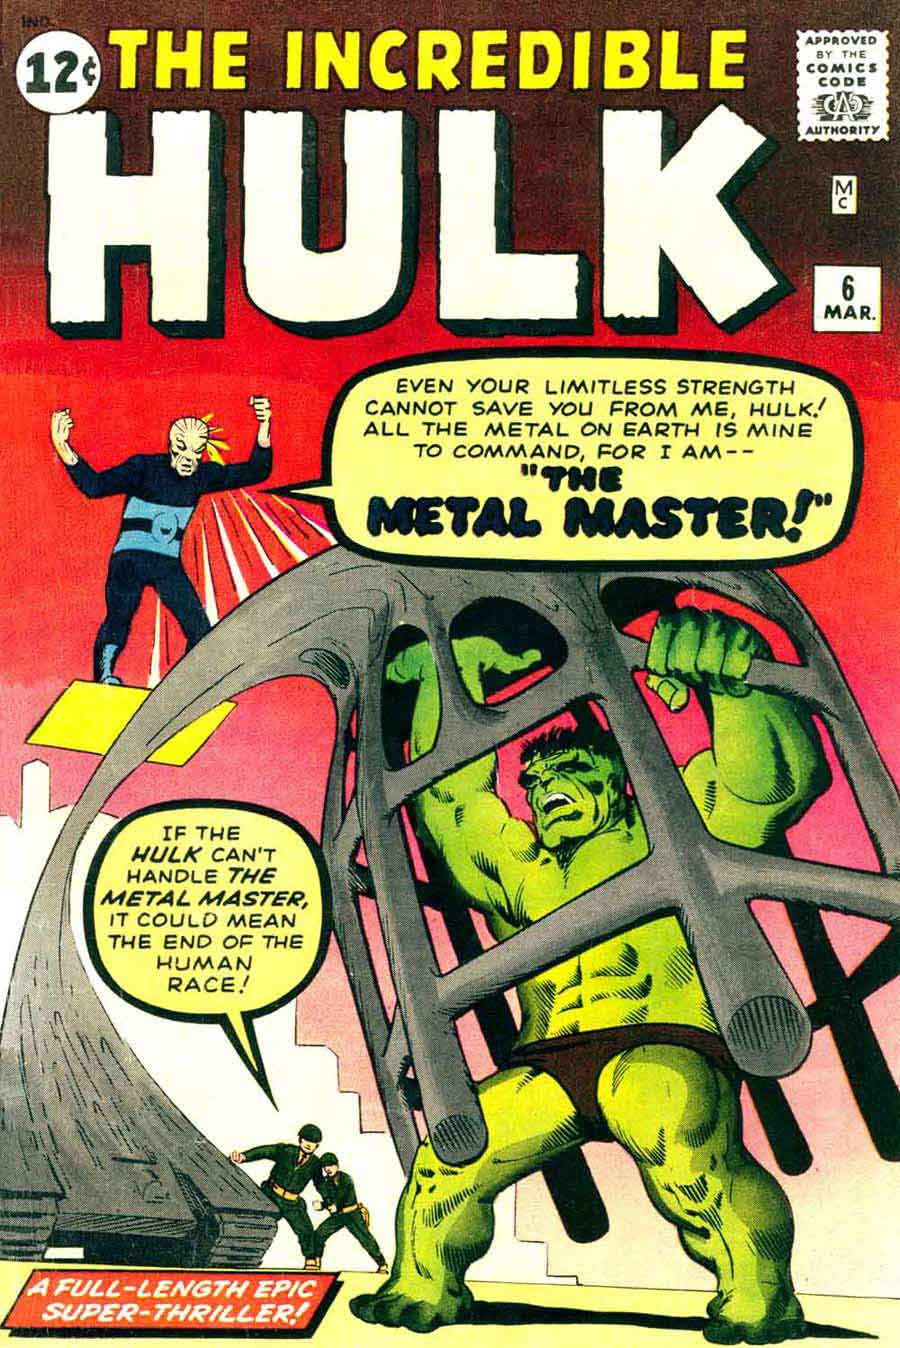 Incredible Hulk v1 #6 marvel comic book cover art by Steve Ditko